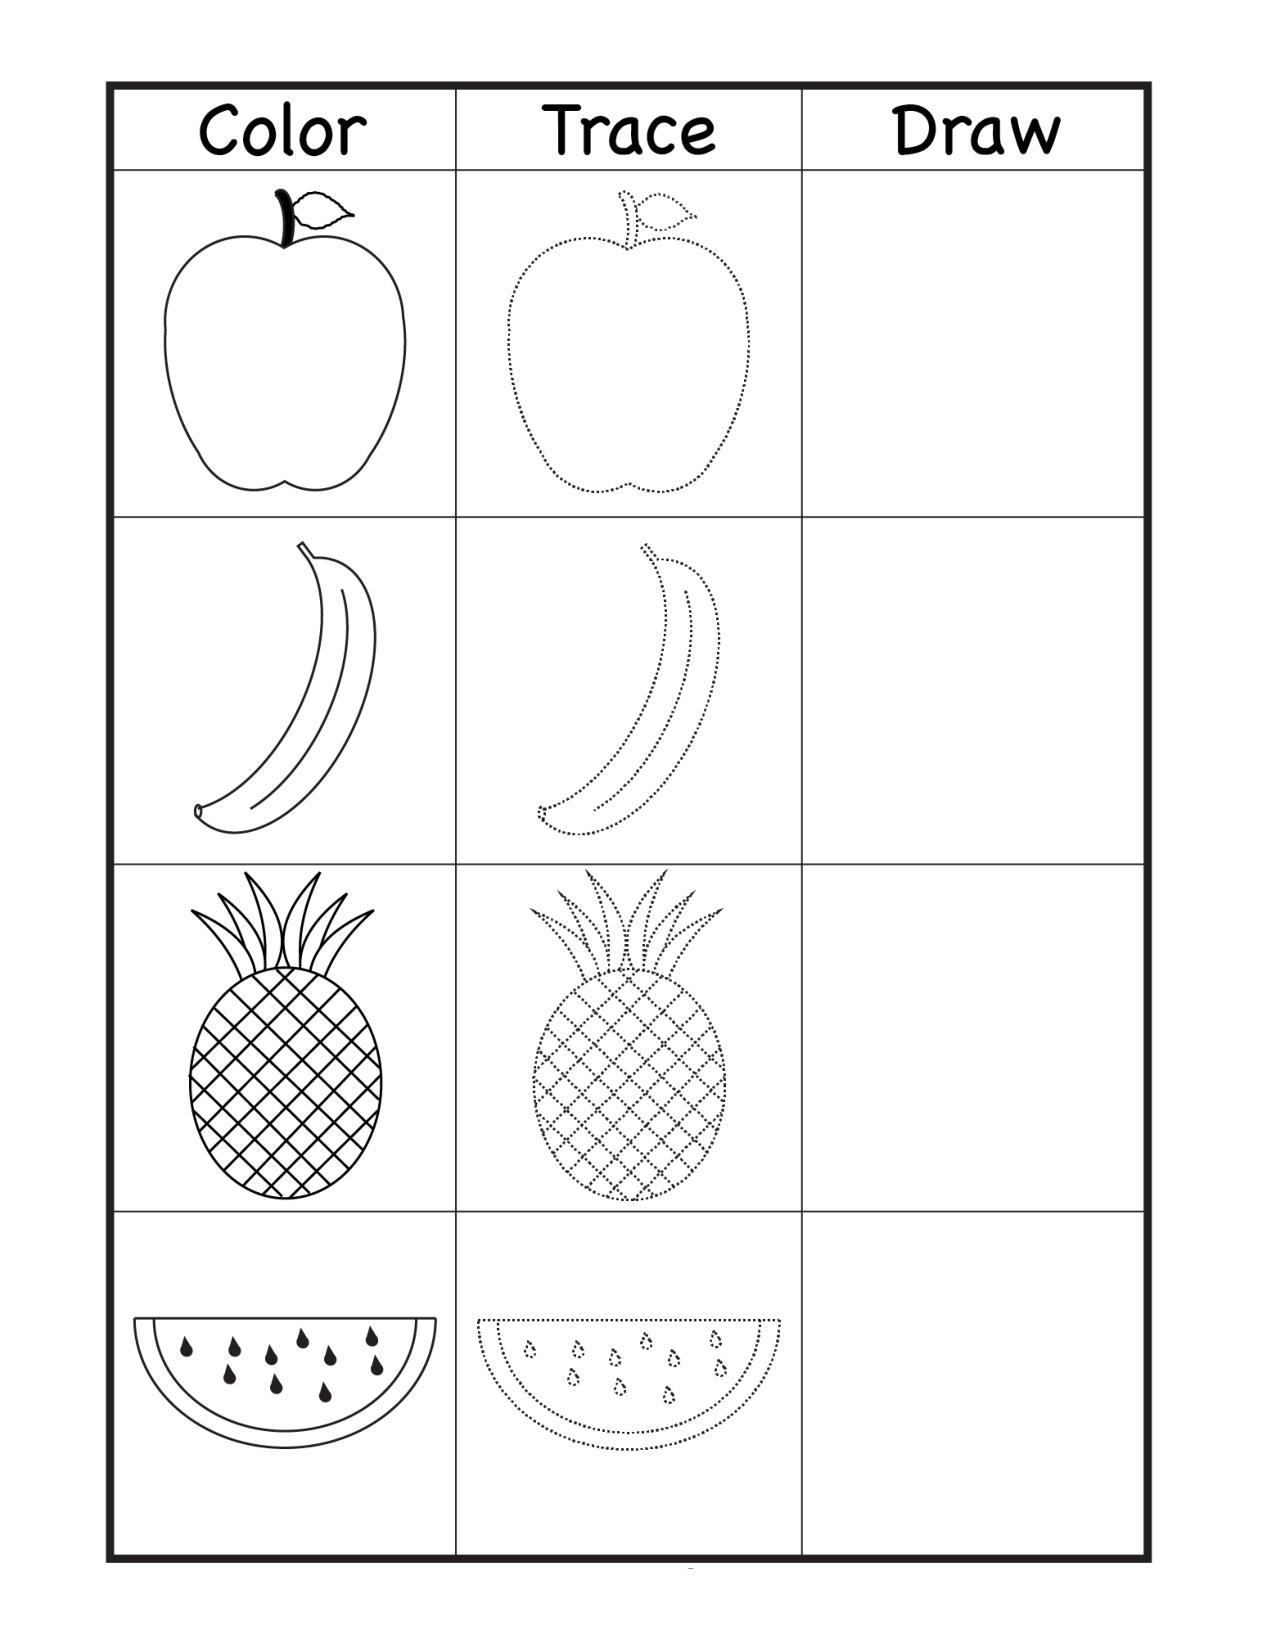 trace fruits worksheets for kindergarten